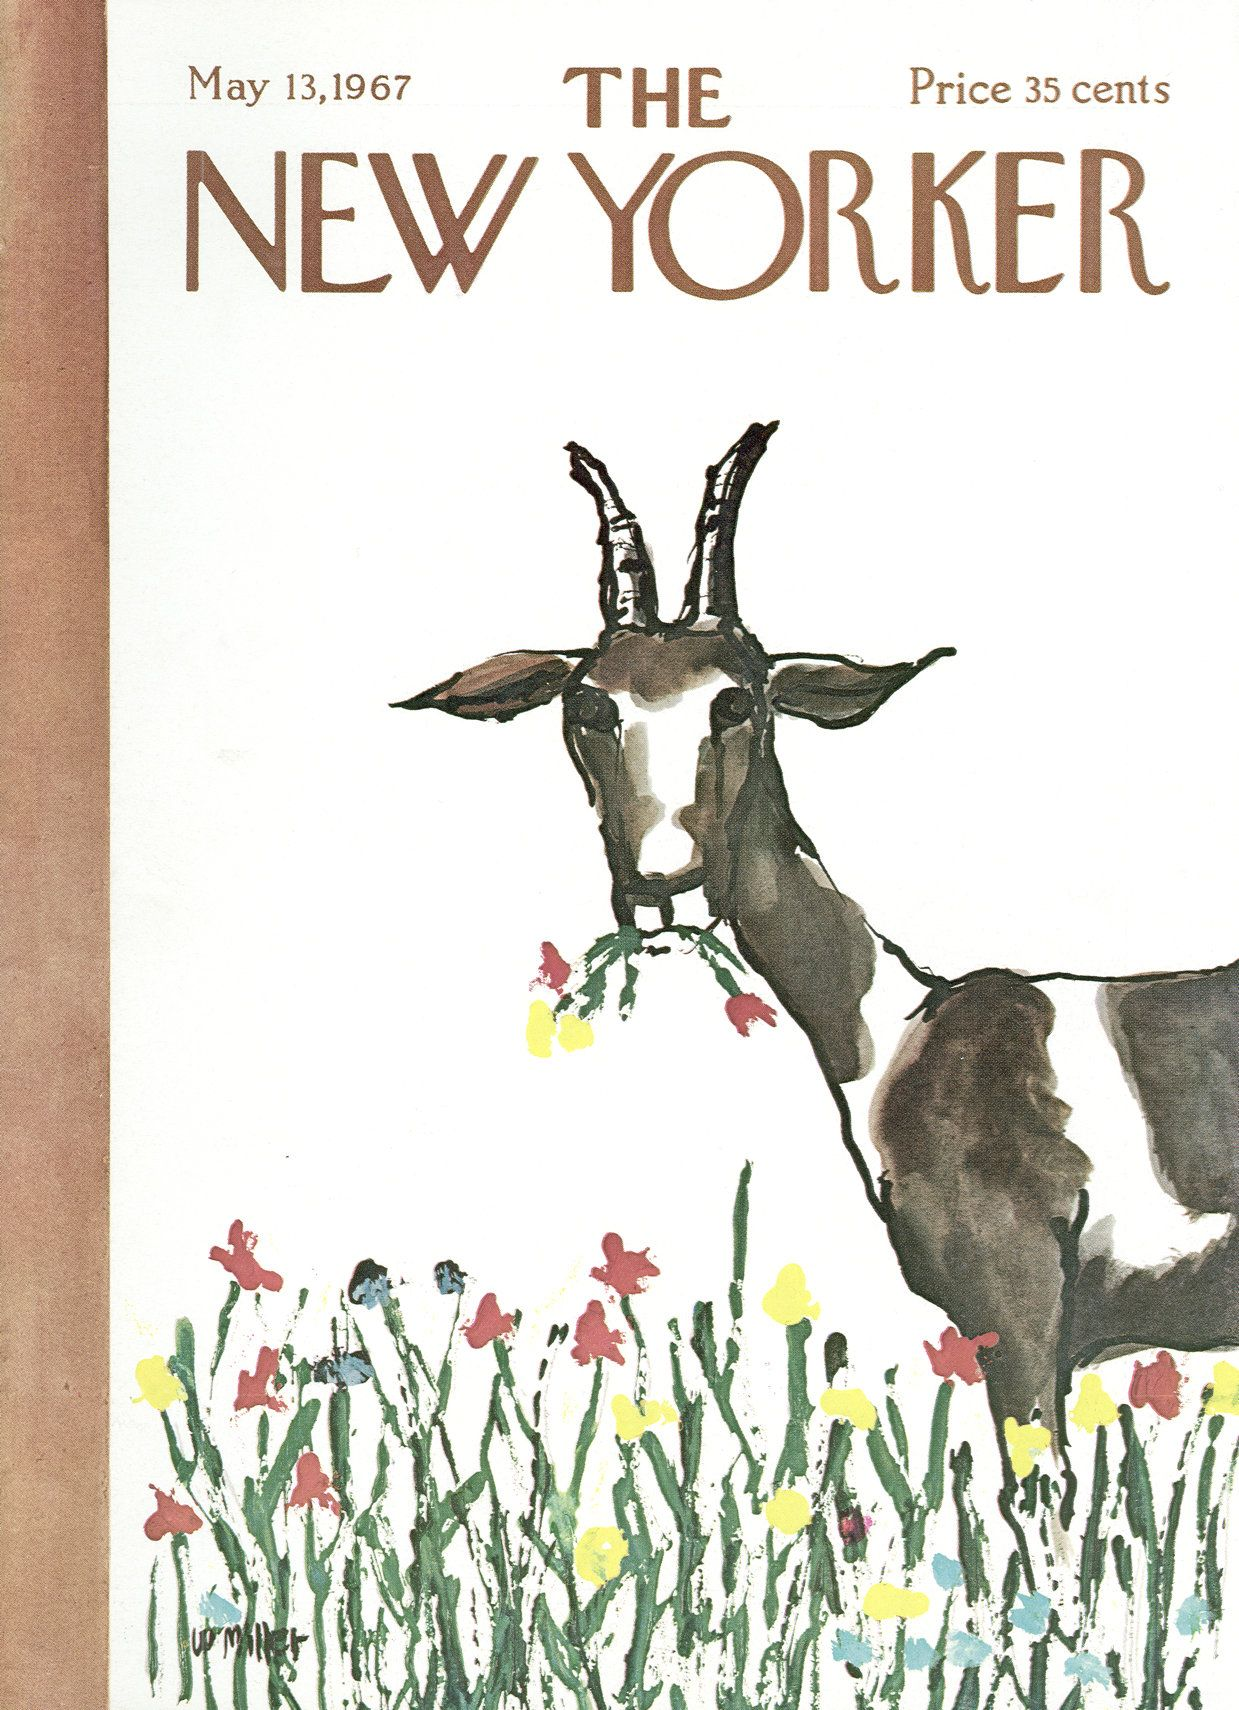 The New Yorker - Saturday, May 13, 1967 - Issue # 2204 - Vol. 43 - N° 12 - Cover by : Warren Miller